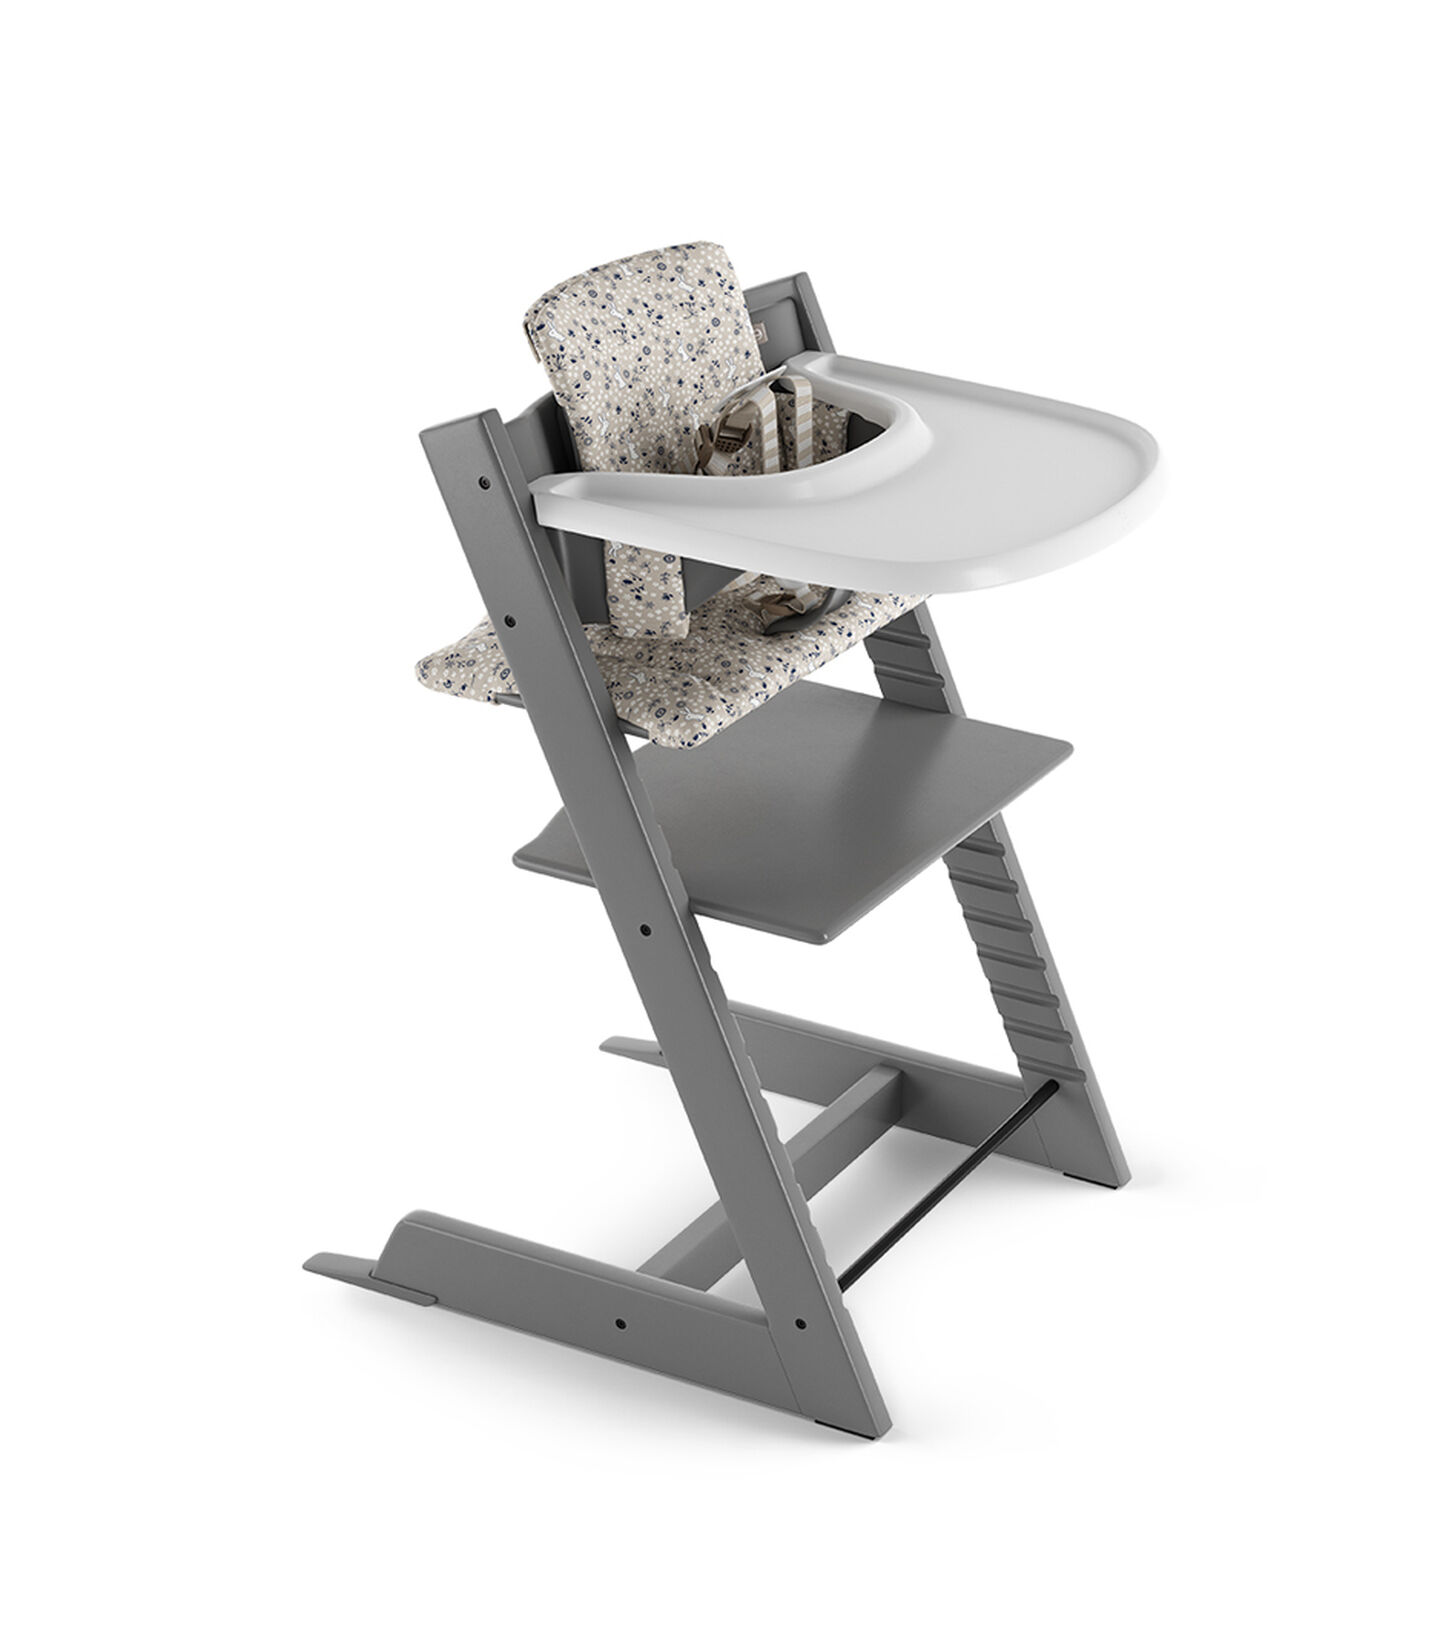 Tripp Trapp® Storm Grey with Baby Set, Stokke® Tray White and Classic Cushion Garden Bunny. US version.